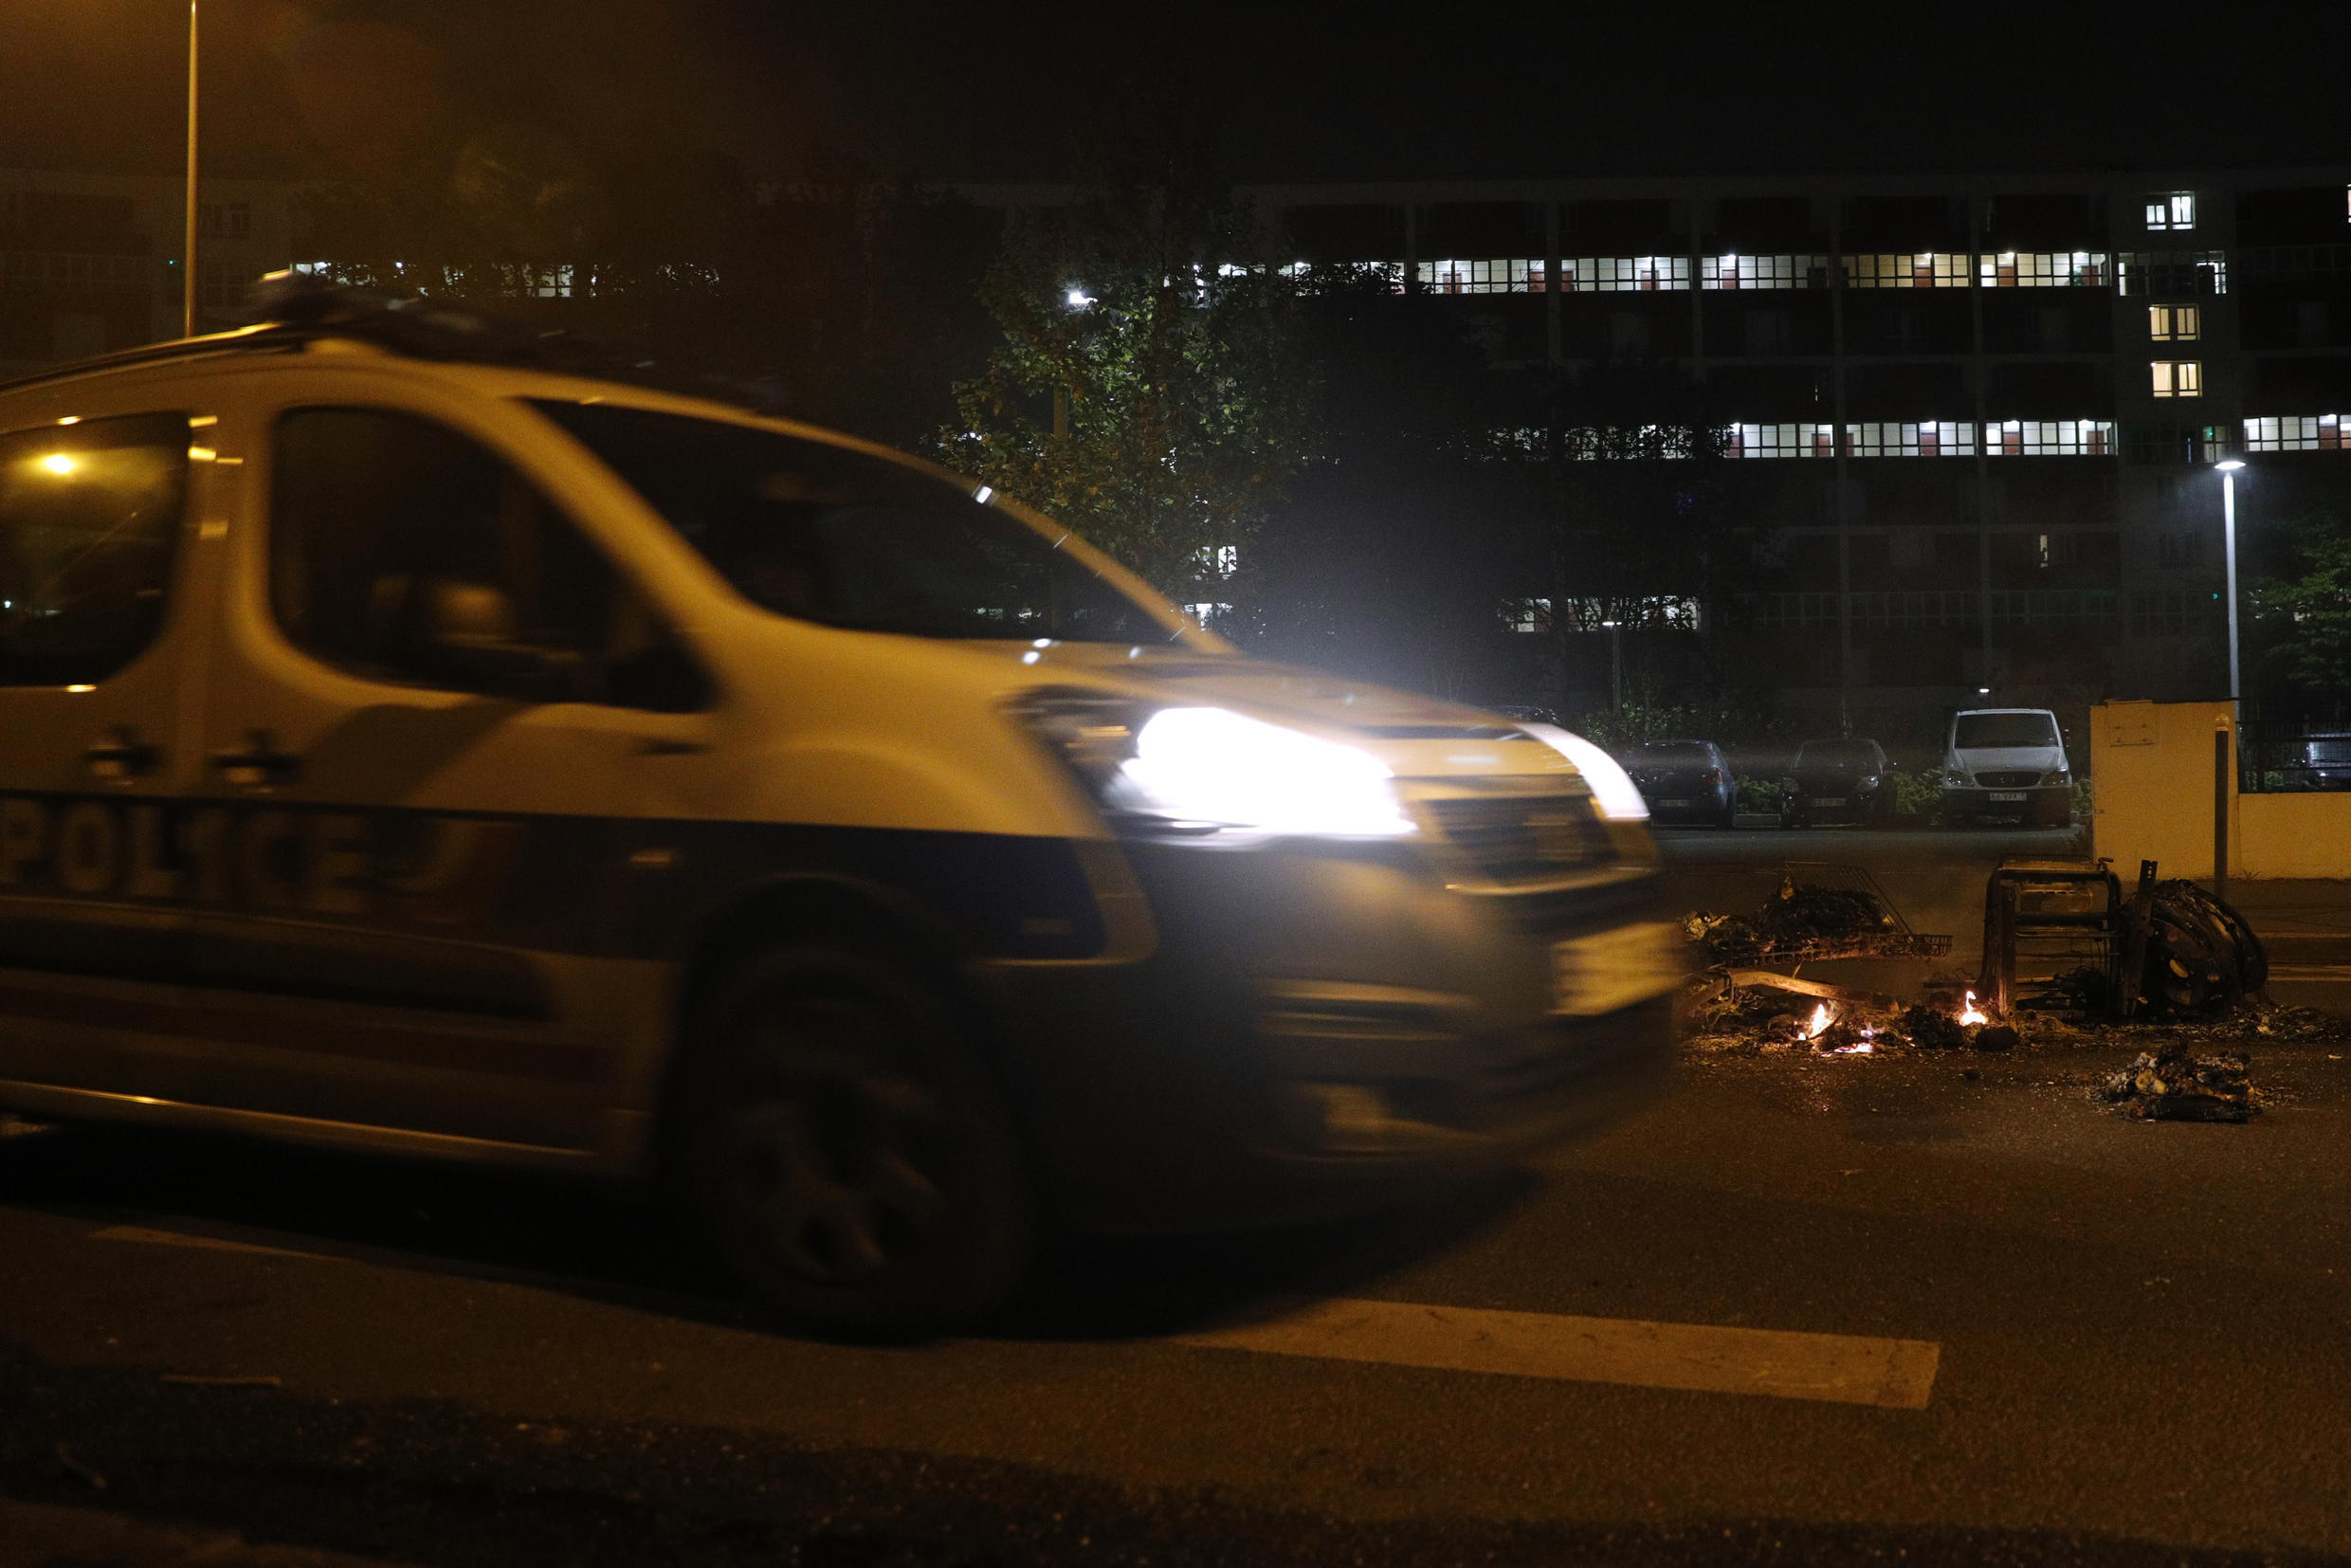 """A French police vehicle drives past a pile of burning trash in front of the """"Les Jardins de la Noue"""" apartment building in Villeneuve-la-Garenne, in the northern suburbs of Paris, early on April 20, 2020."""